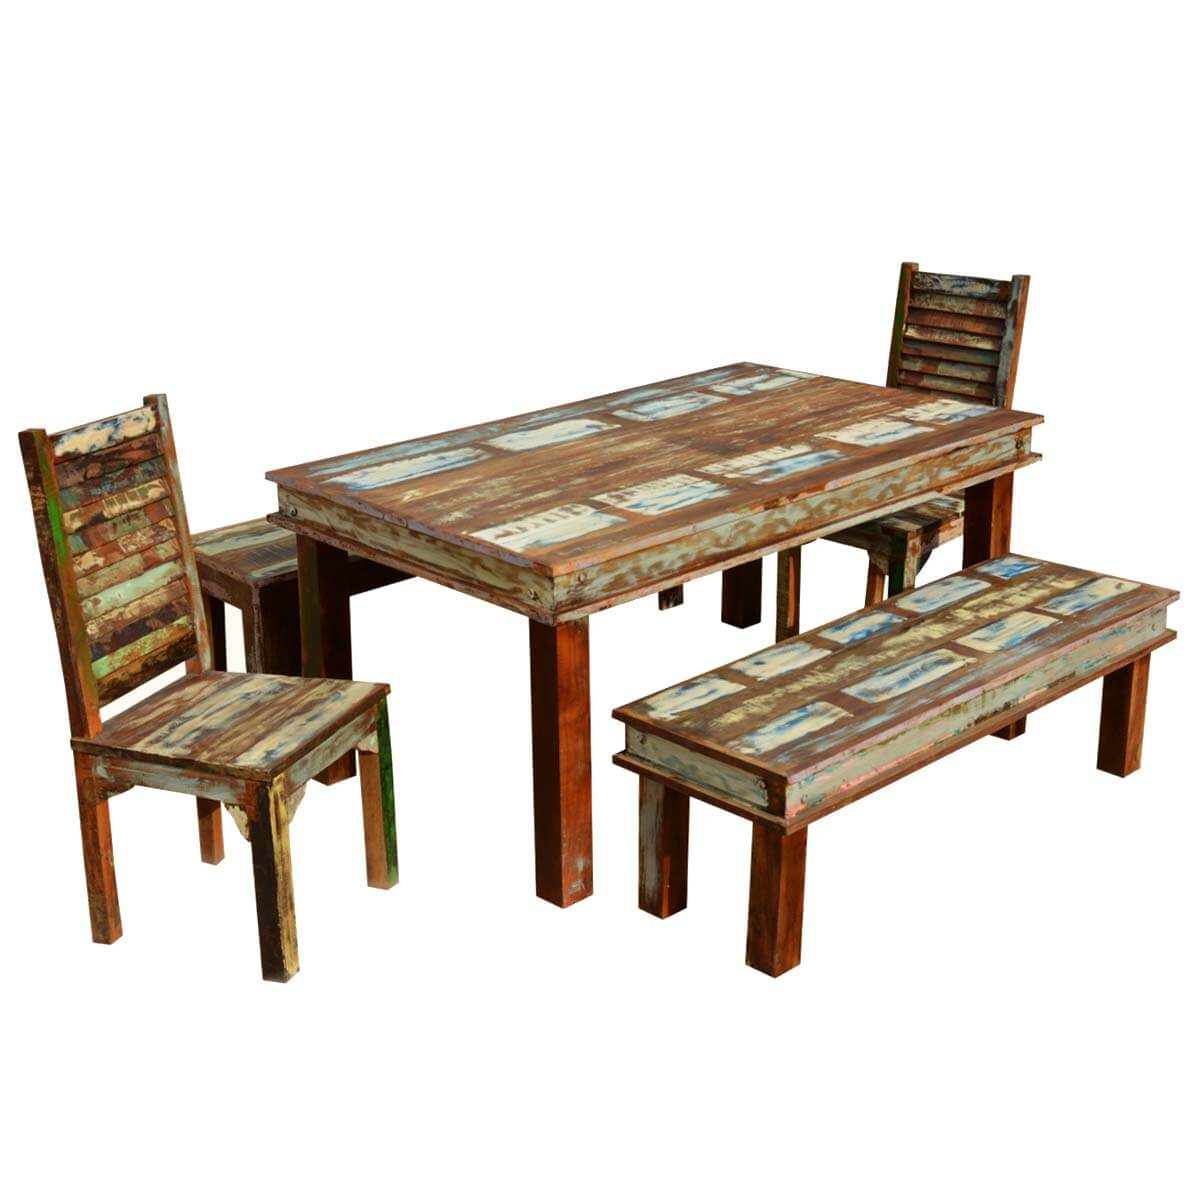 Sierra Reclaimed Wood Furniture Dining Table With 2 Chairs